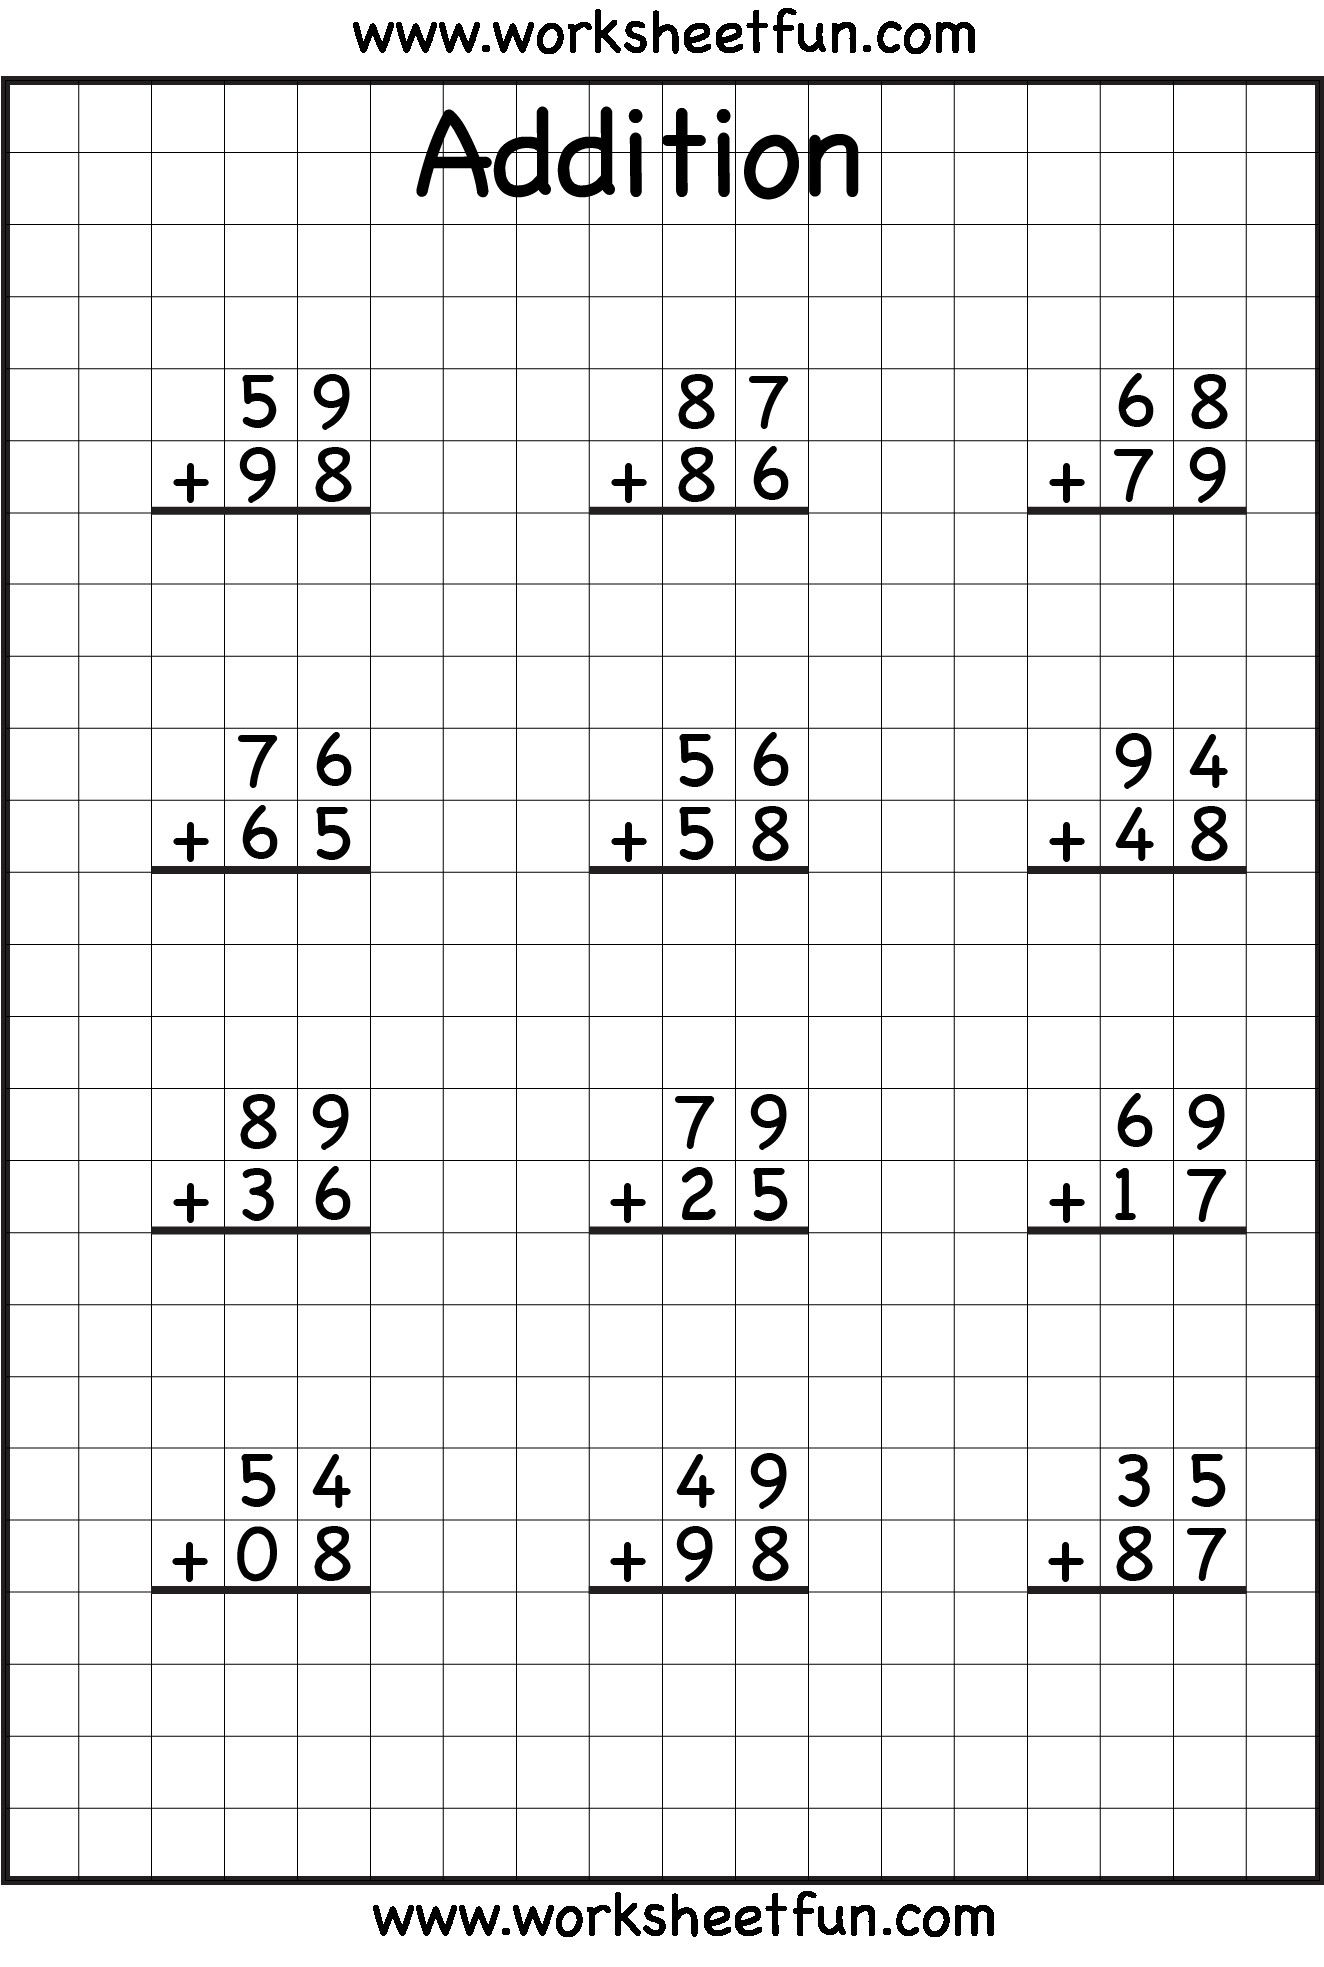 5 Free Math Worksheets Third Grade 3 Addition Add 3 3